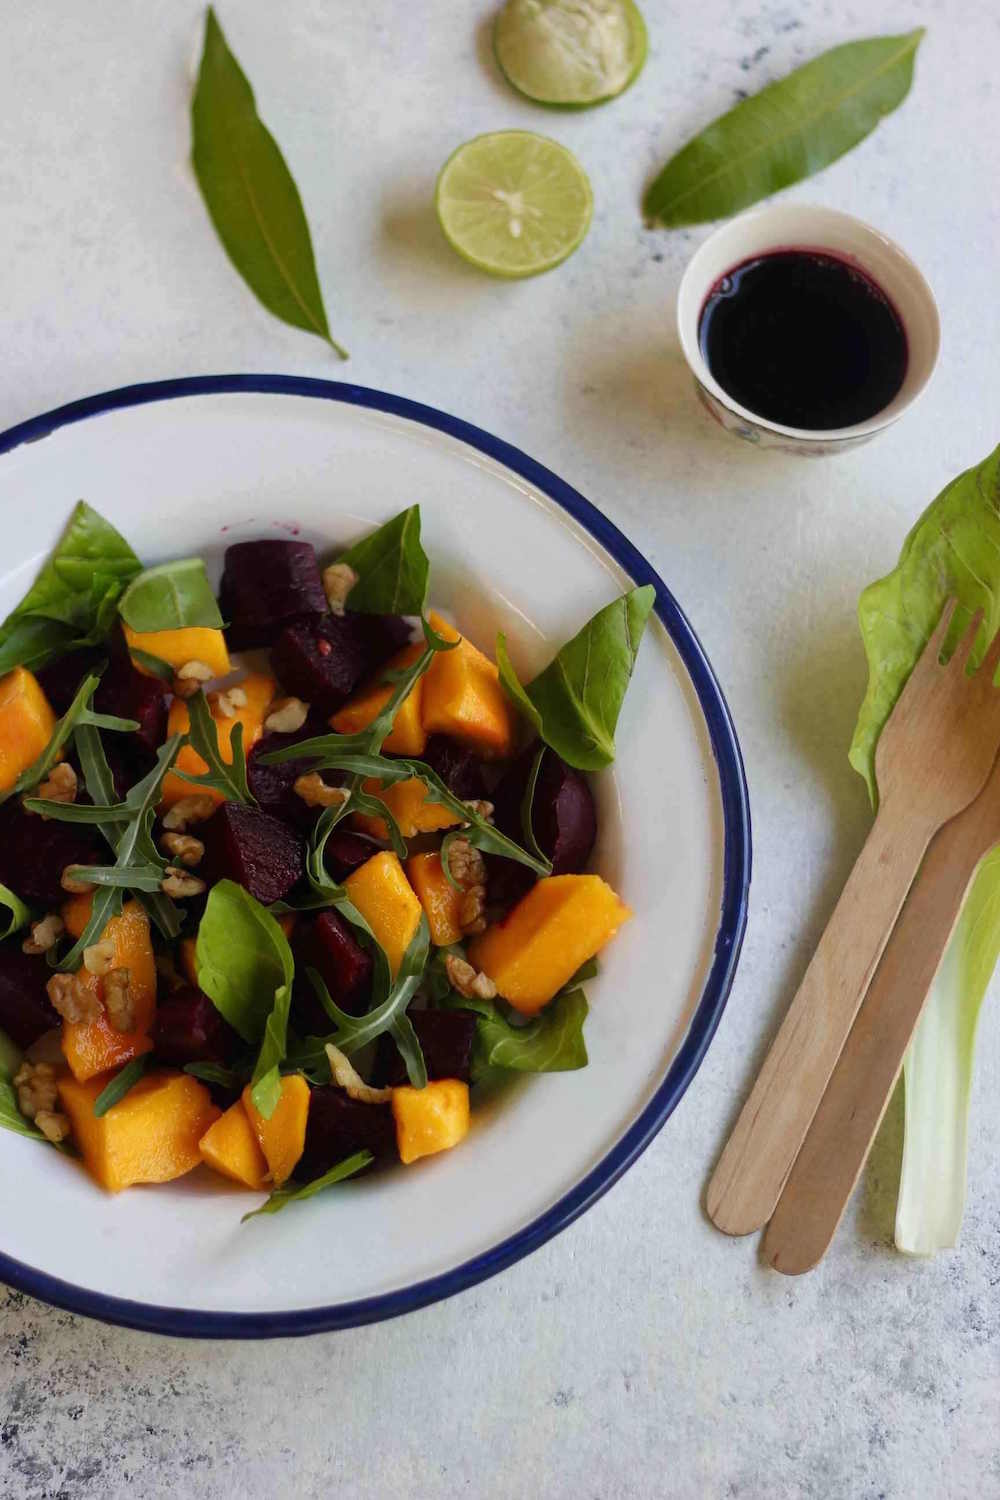 This recipe for a beet and mango salad is not just a visual feast with its contrasting colours, but also a treat for the tastebuds.